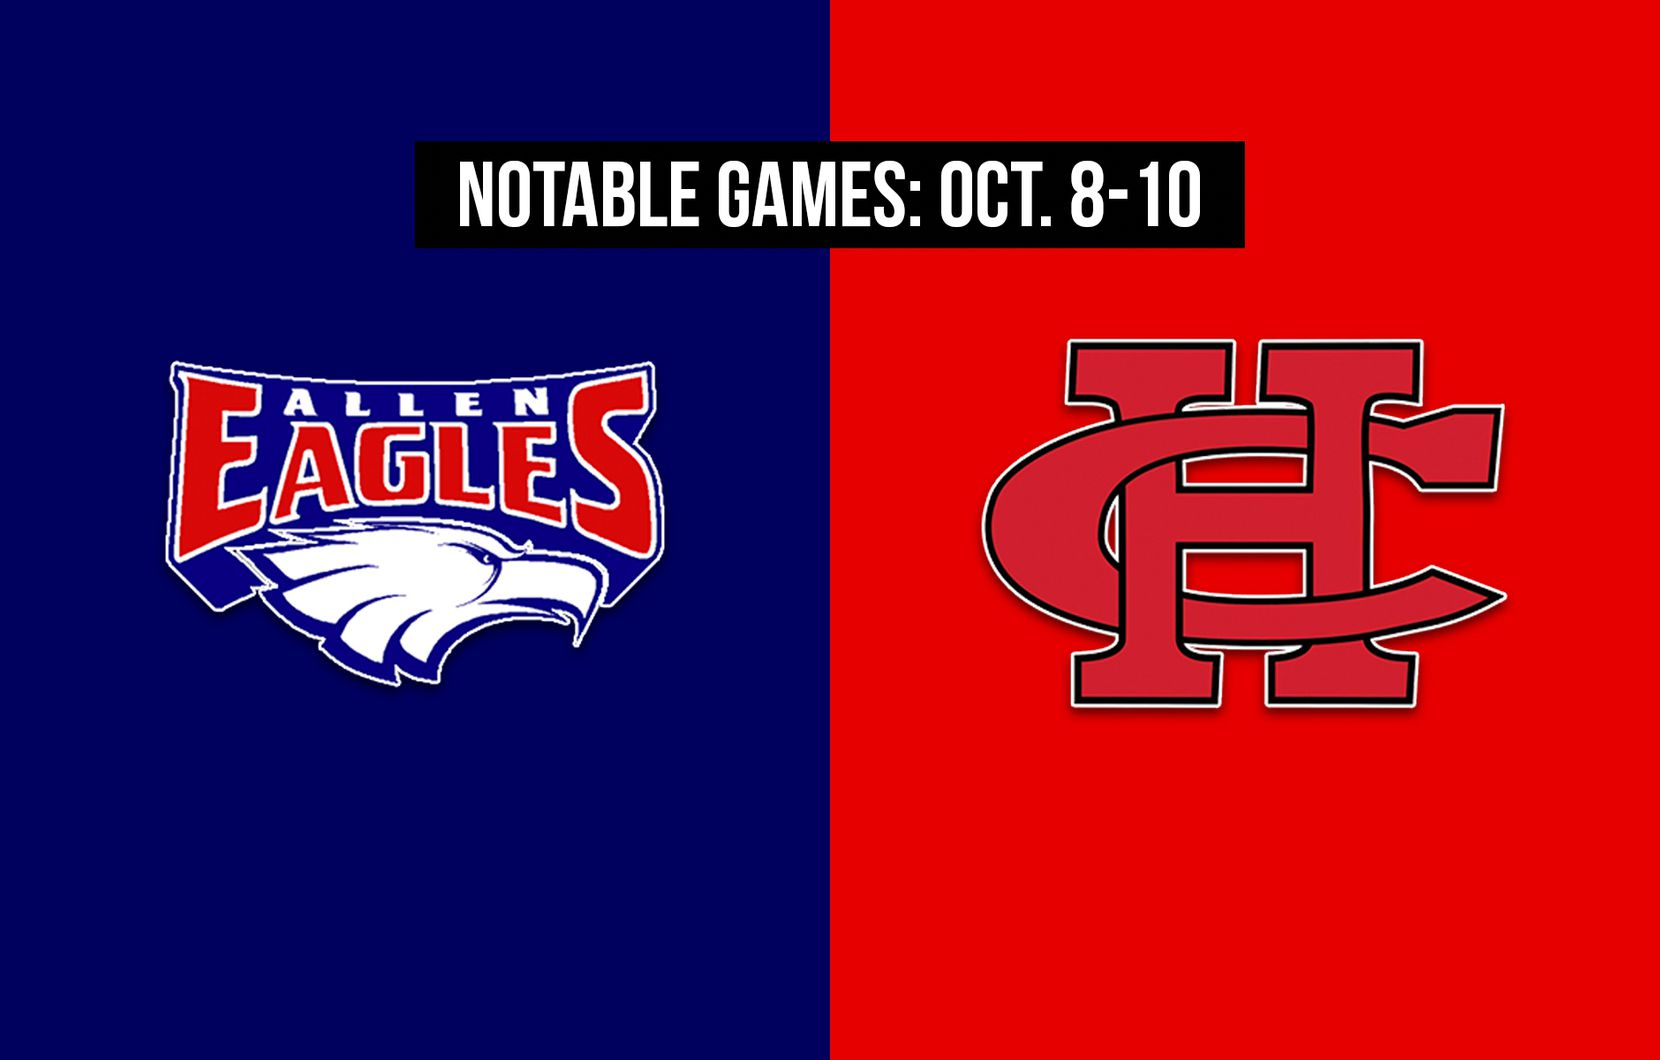 Notable games for the week of Oct. 8-10 of the 2020 season: Allen vs. Cedar Hill.